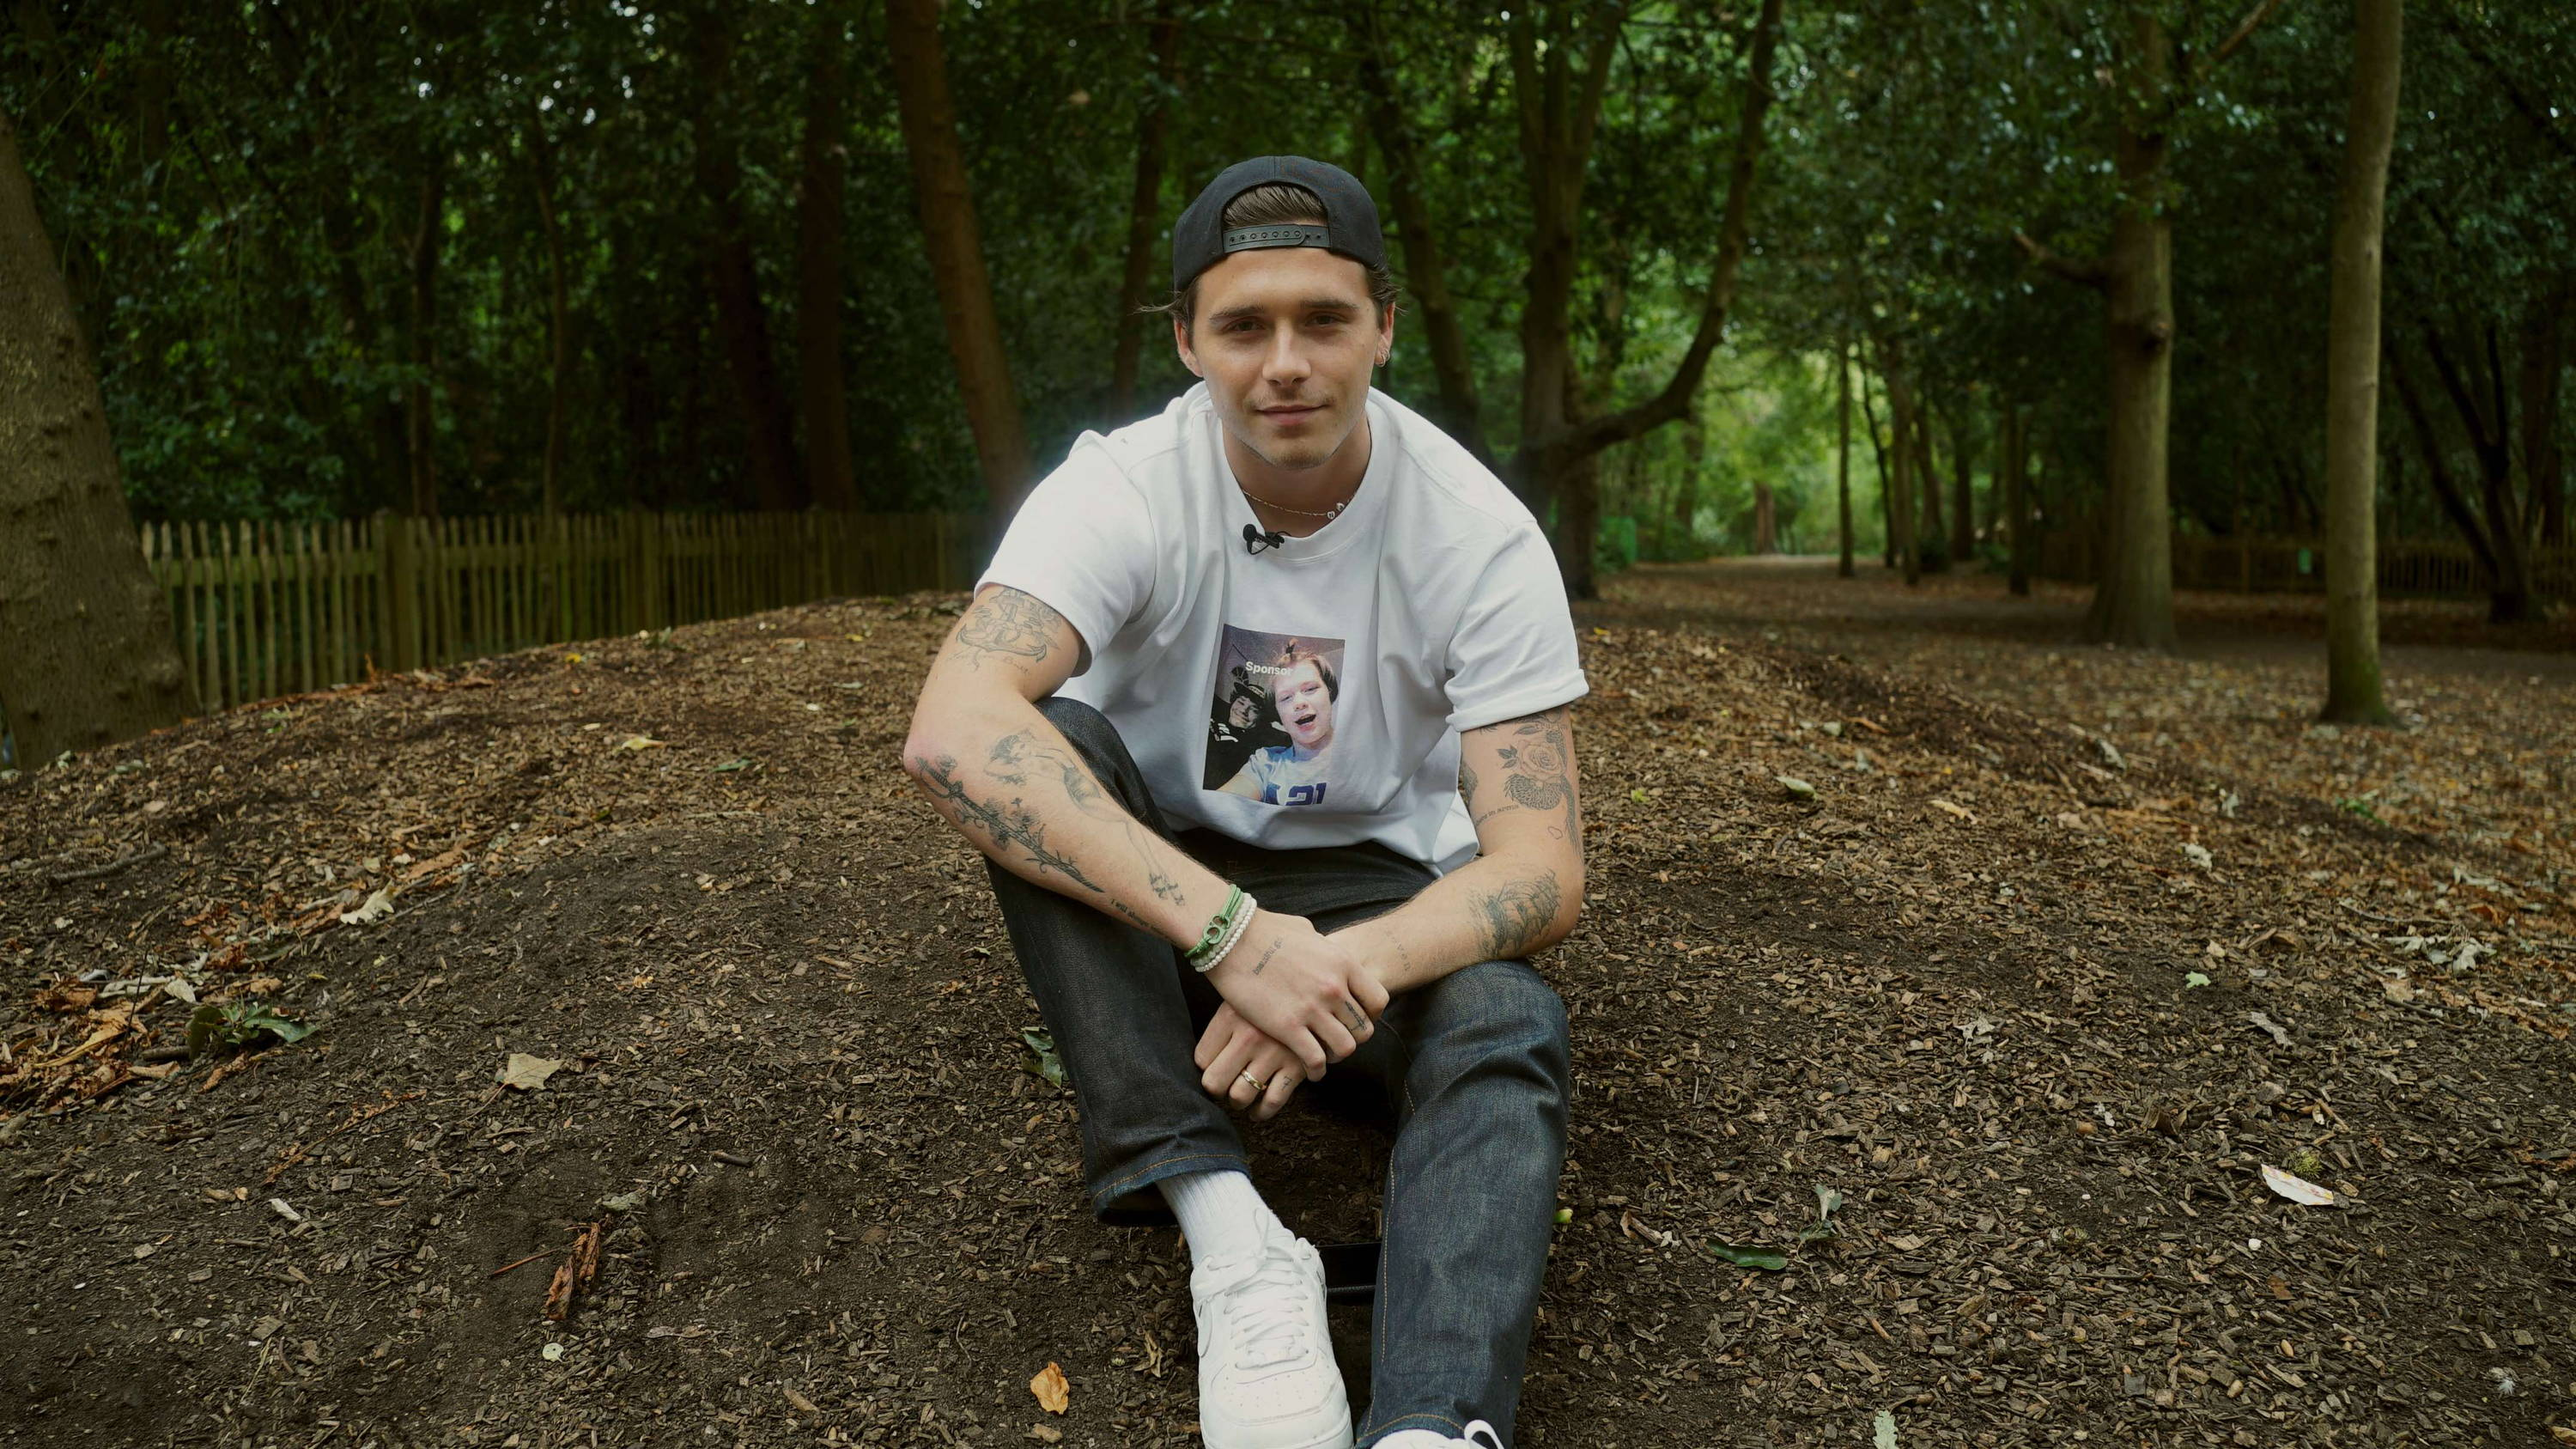 Brooklyn Beckham wears a Goal 13: Climate Action #TOGETHERBAND